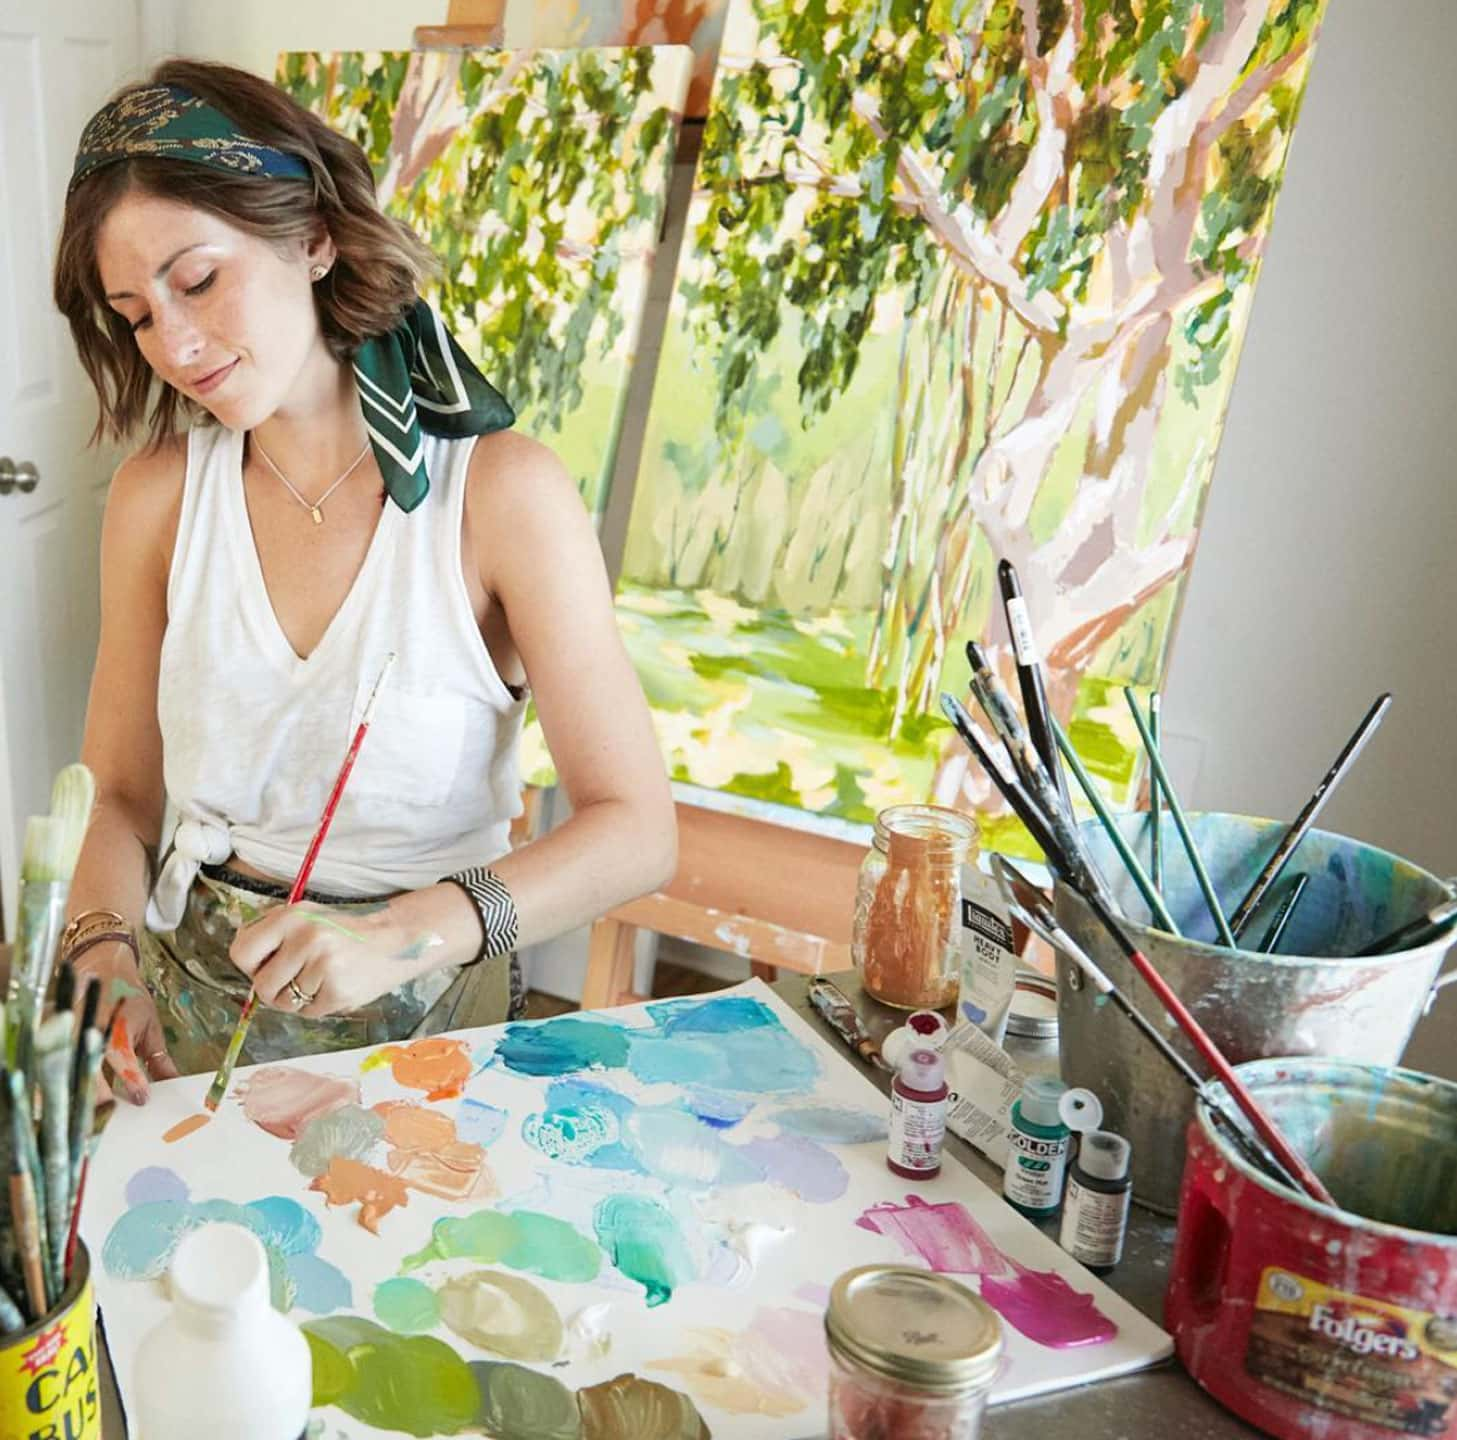 Lizzy Love in her art studio